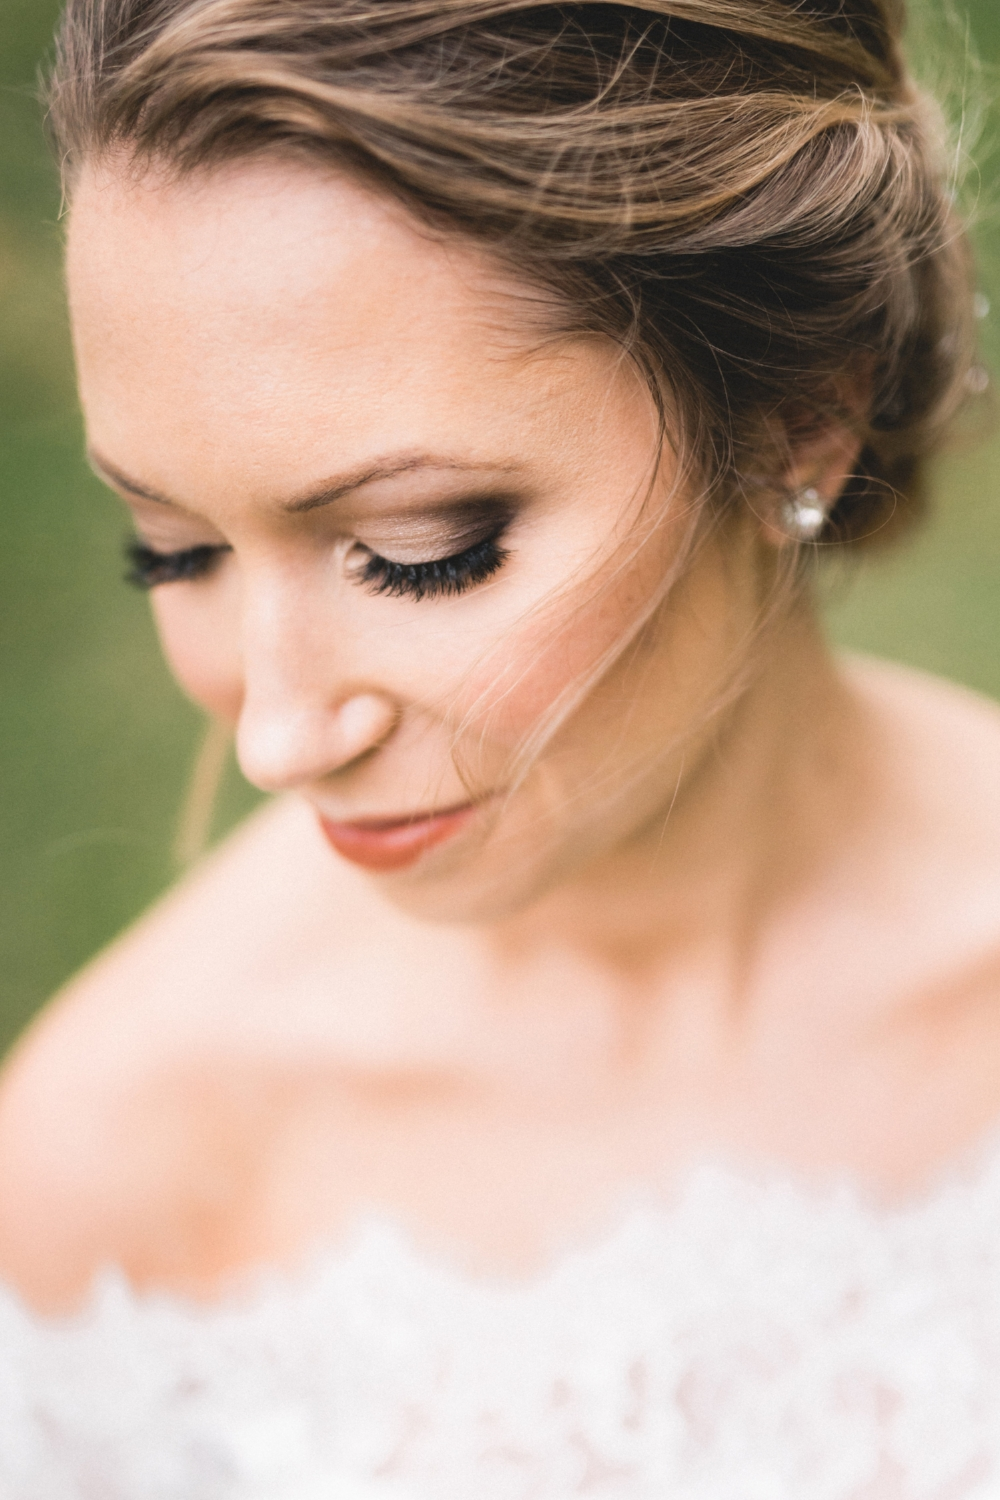 AKC-hunt-bridal-portraits-09-11-2017-040 copy.jpg